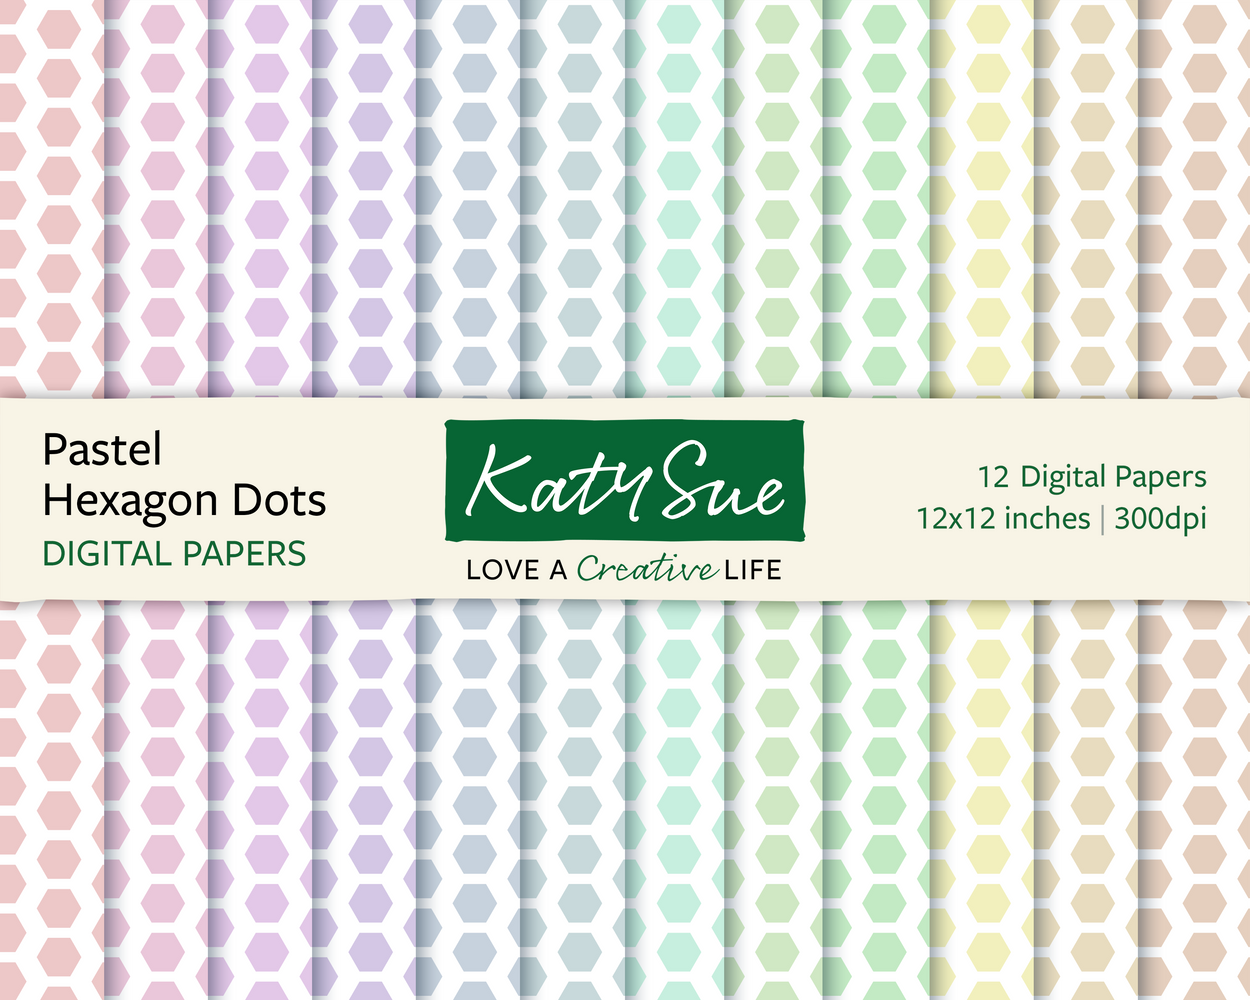 Pastel Hexagon Dots | 12x12 Digital Papers